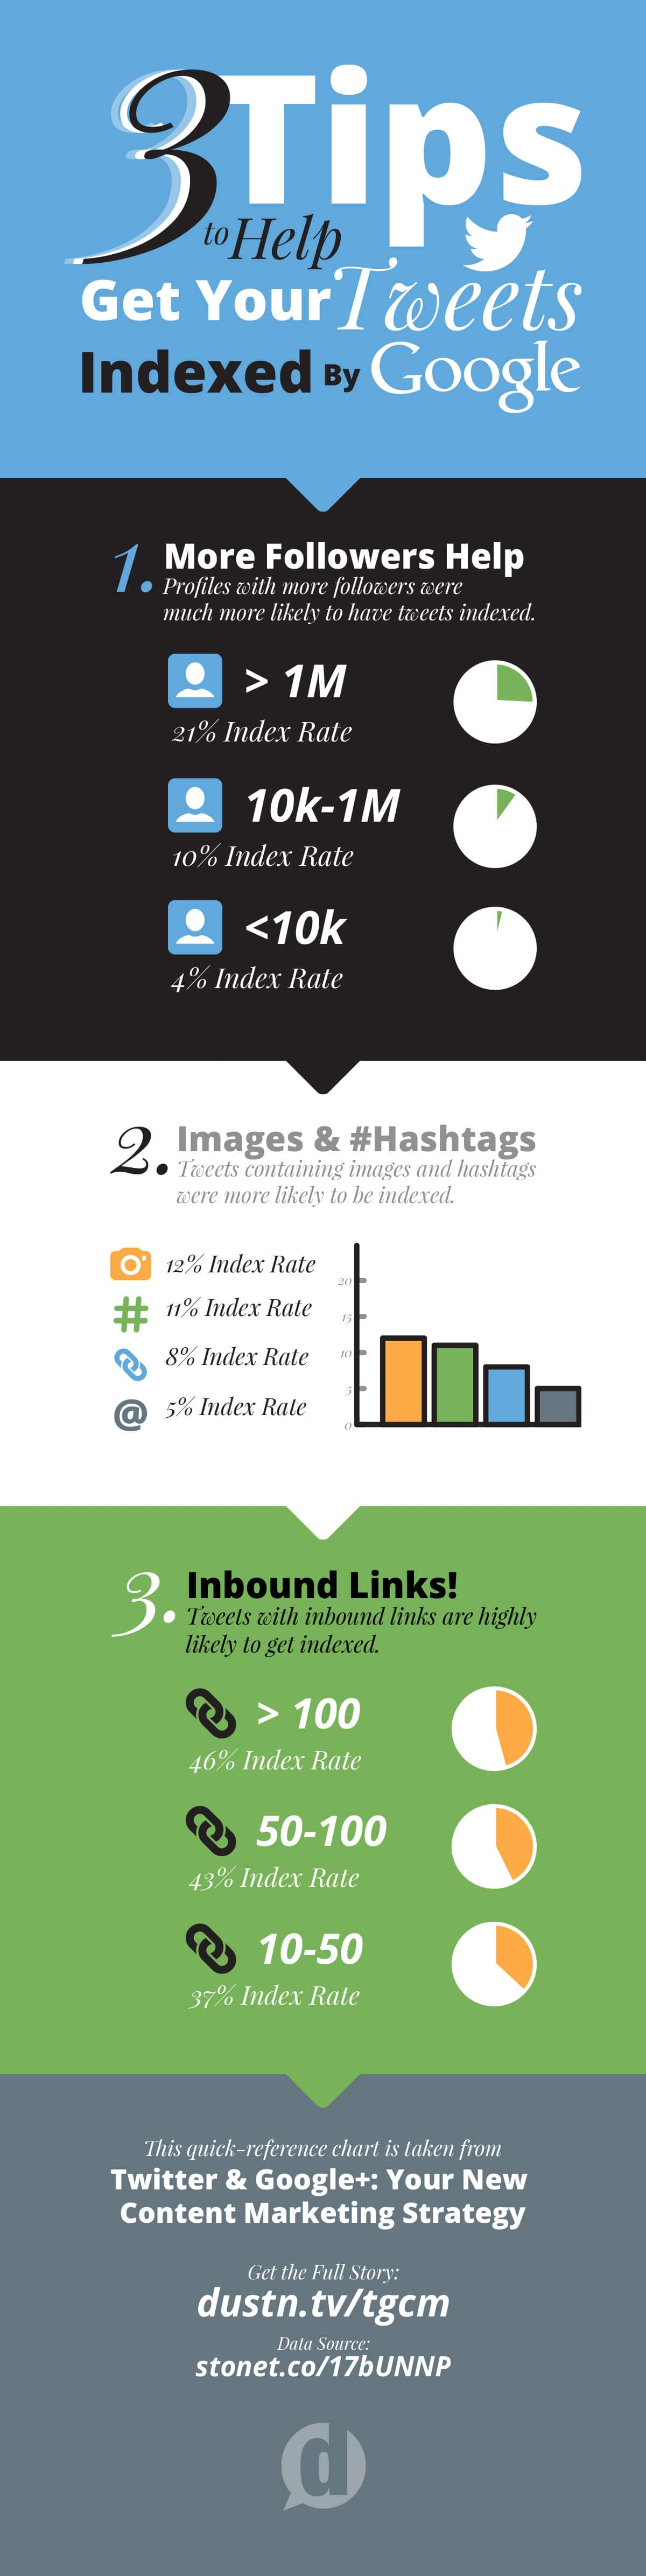 3 Tips to Get Your Tweets Indexed by Google